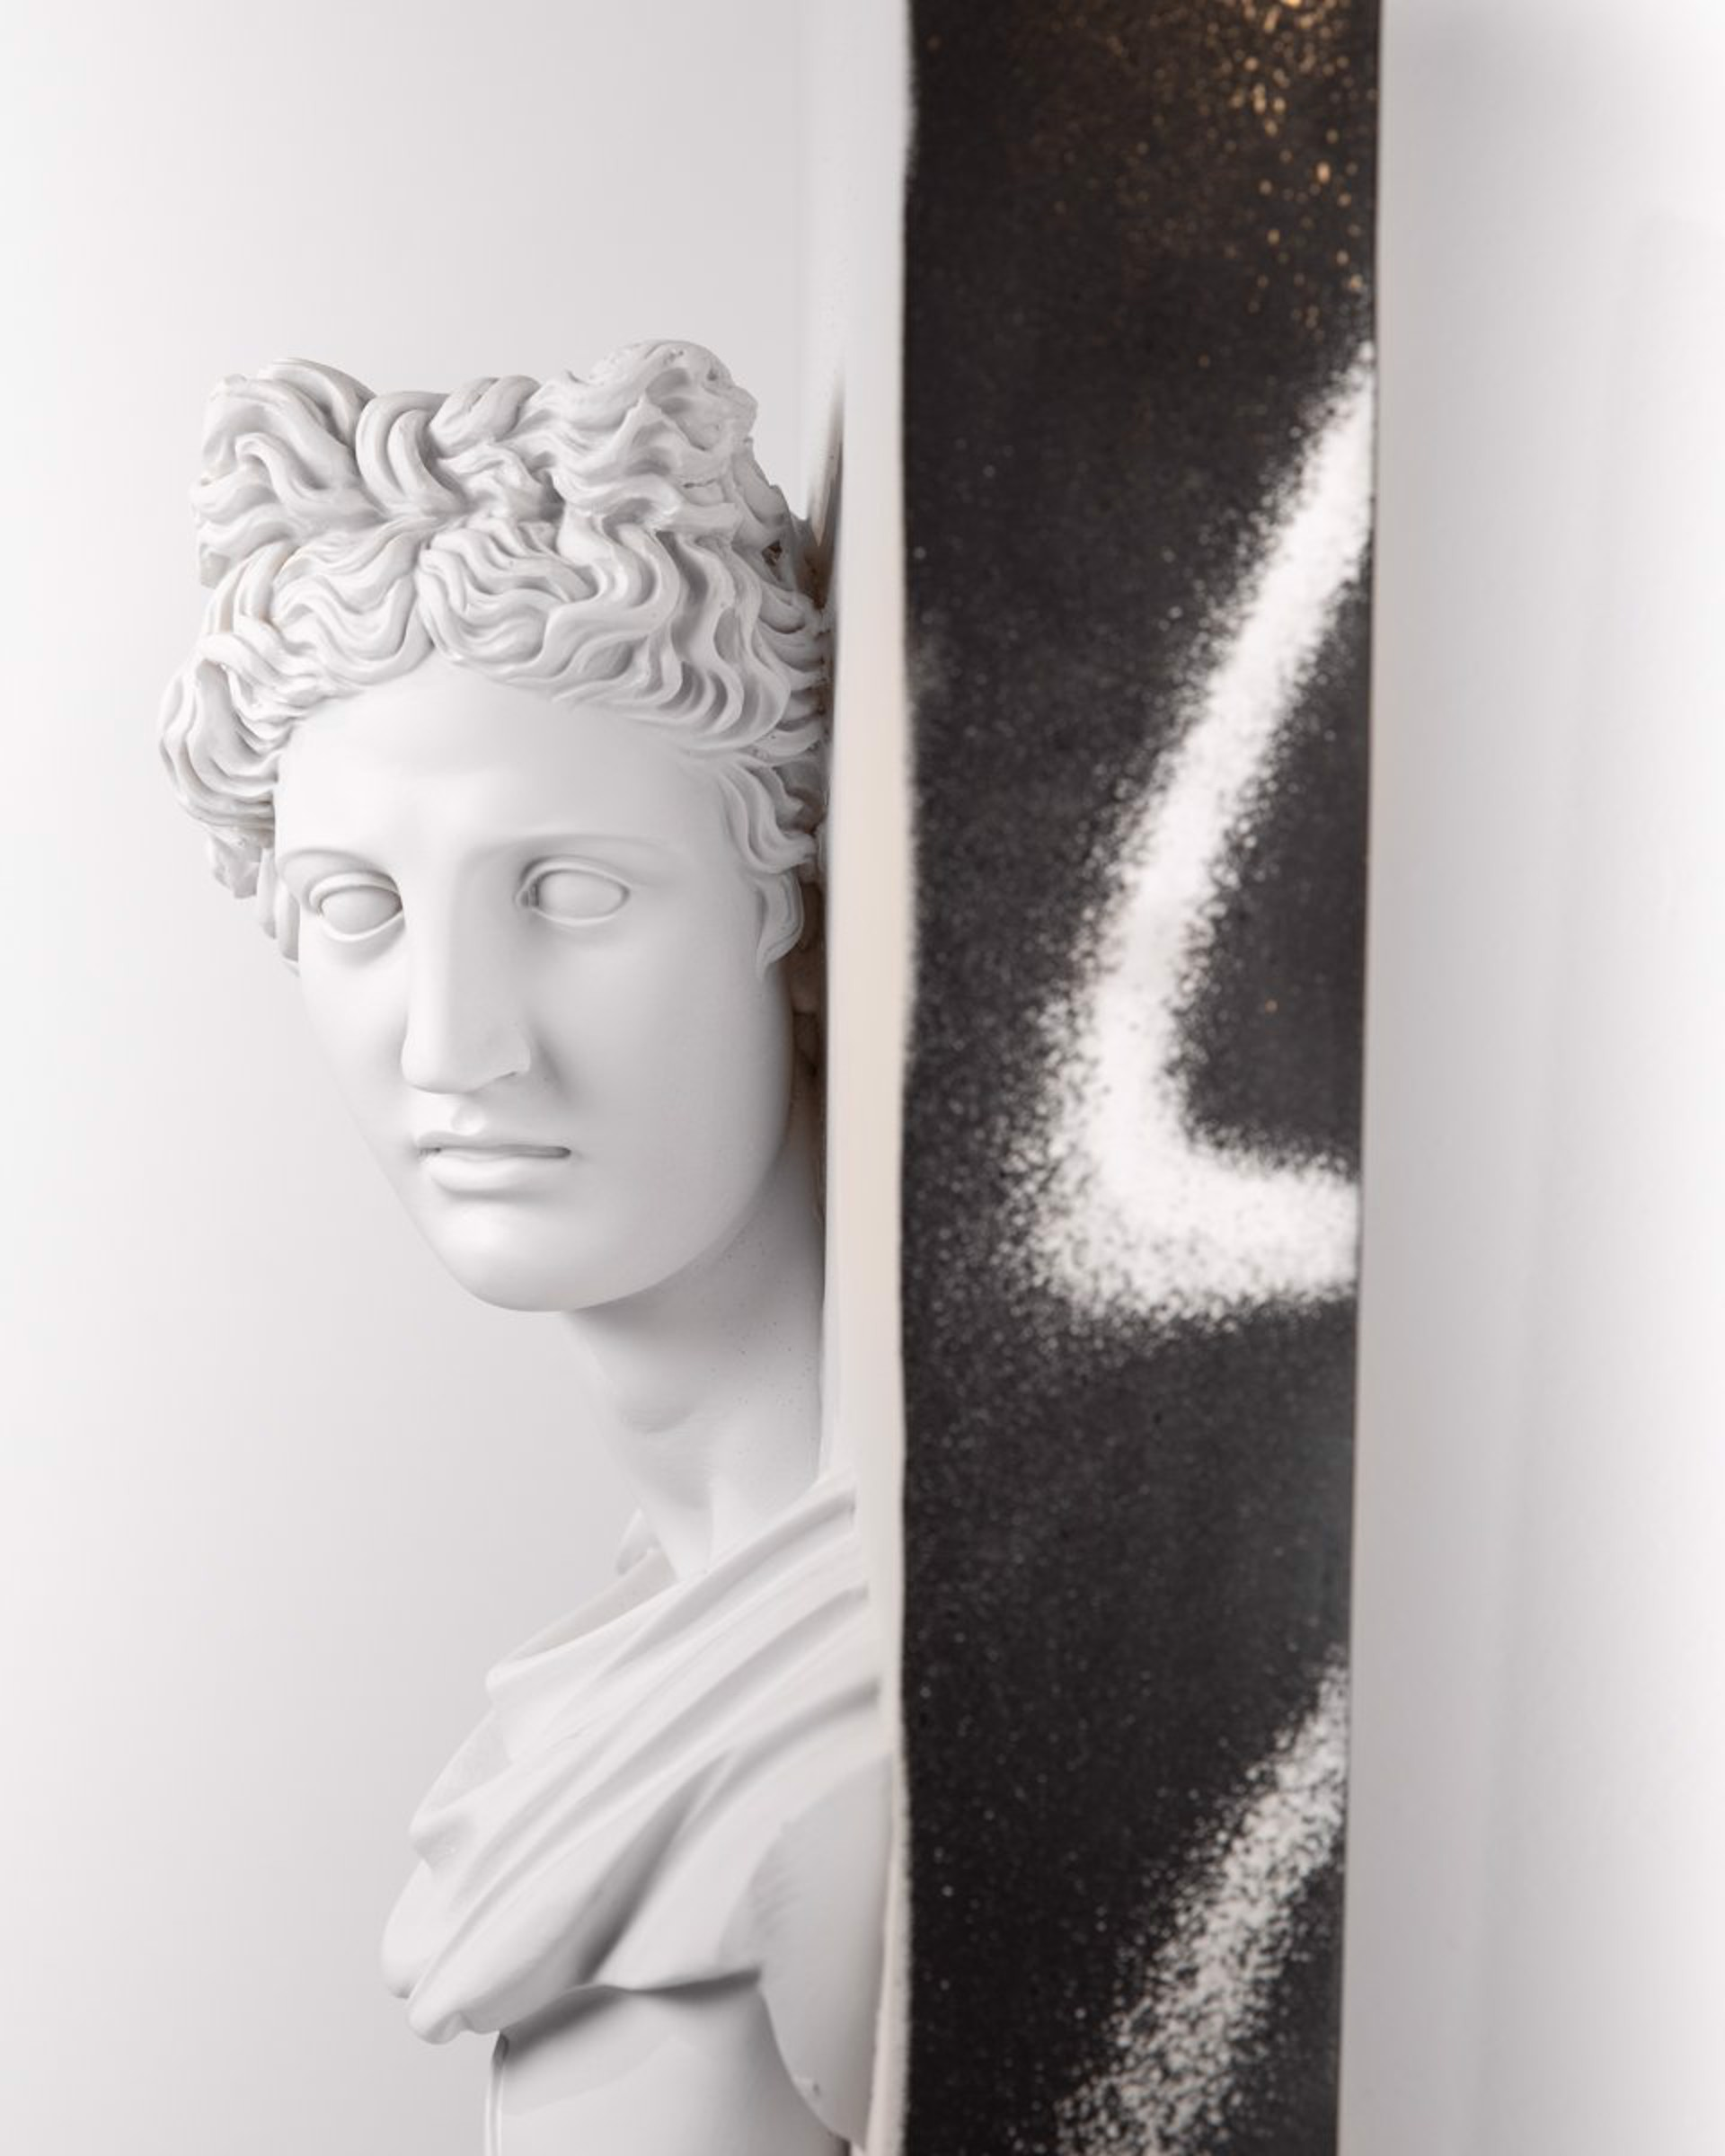 Apollo from the Walls III by PichiAvo